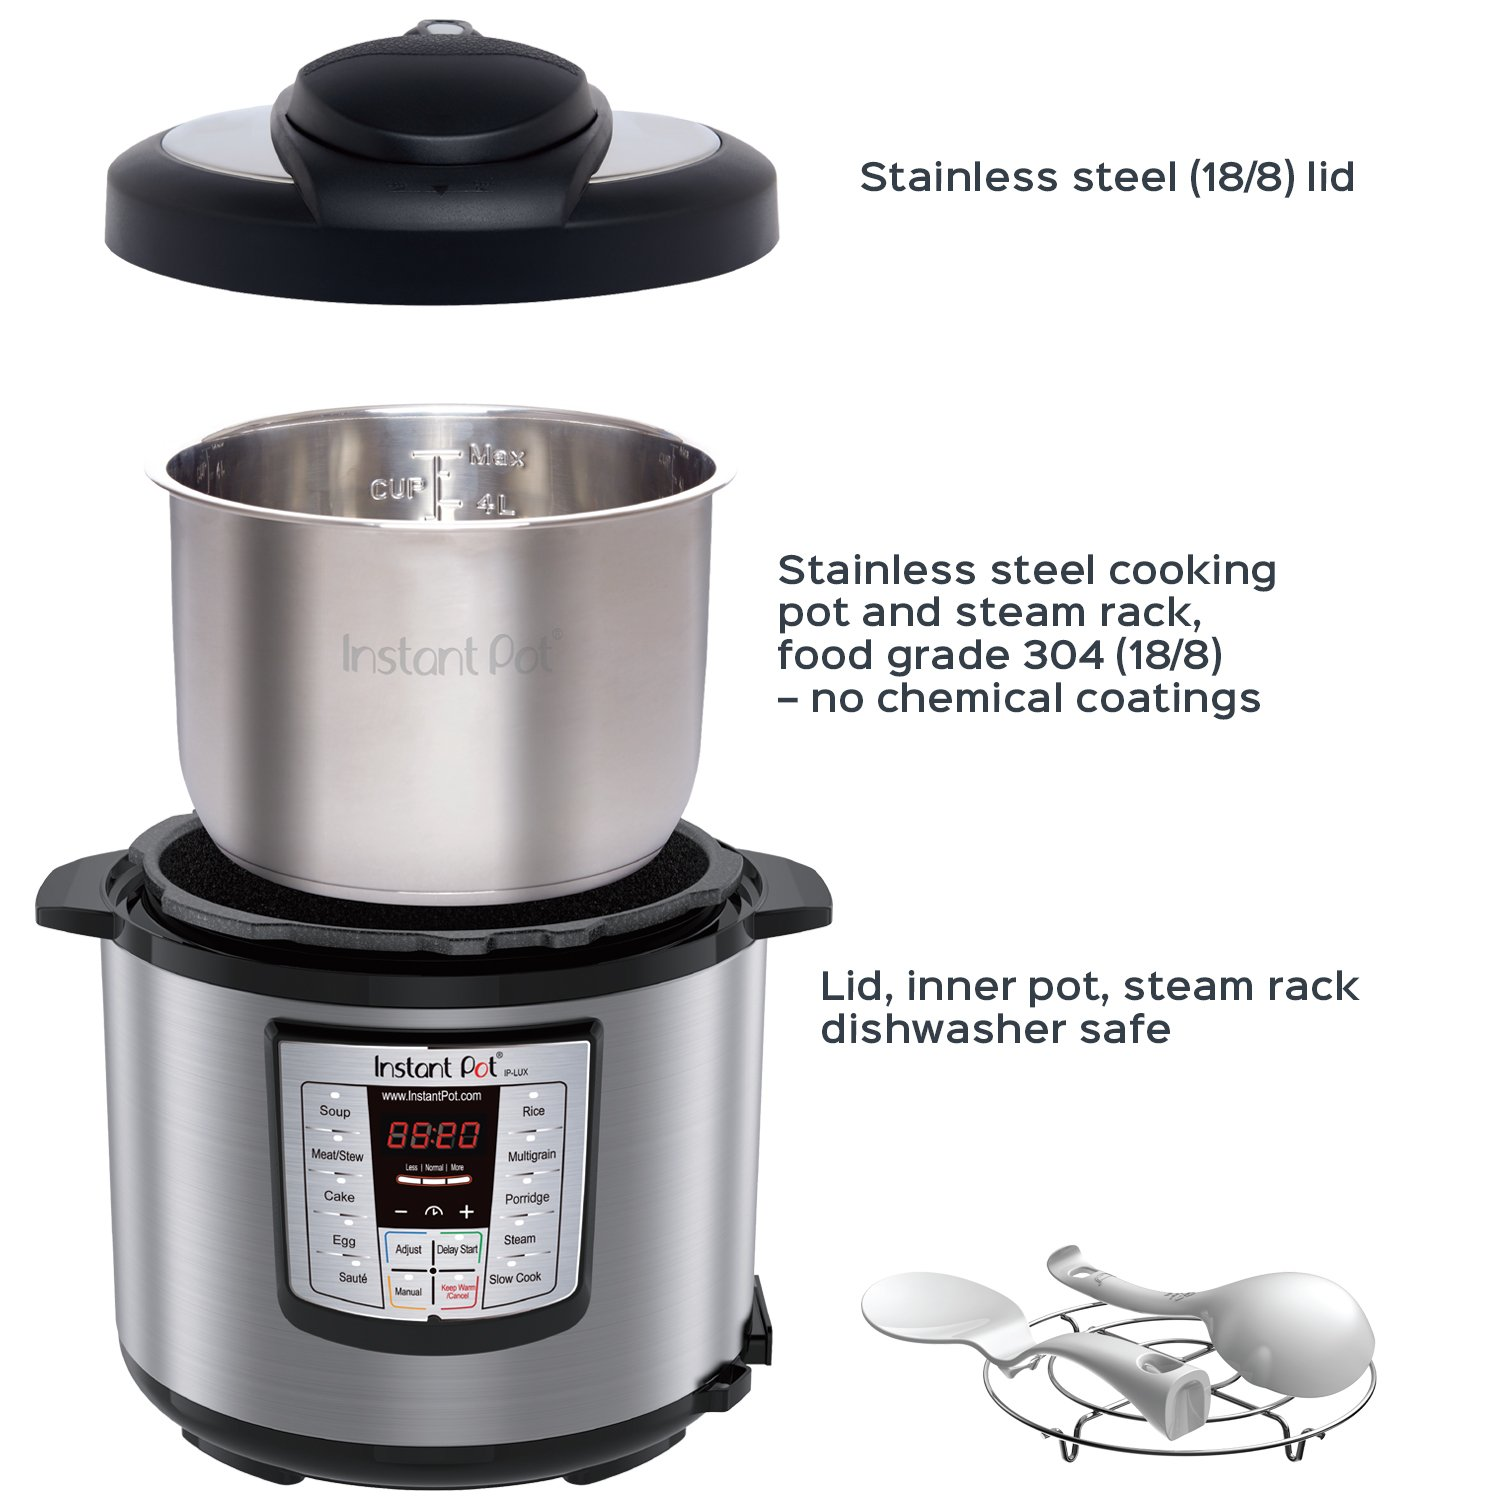 Instant Pot LUX60V3 V3 6 Qt 6-in-1 Multi-Use Programmable Pressure